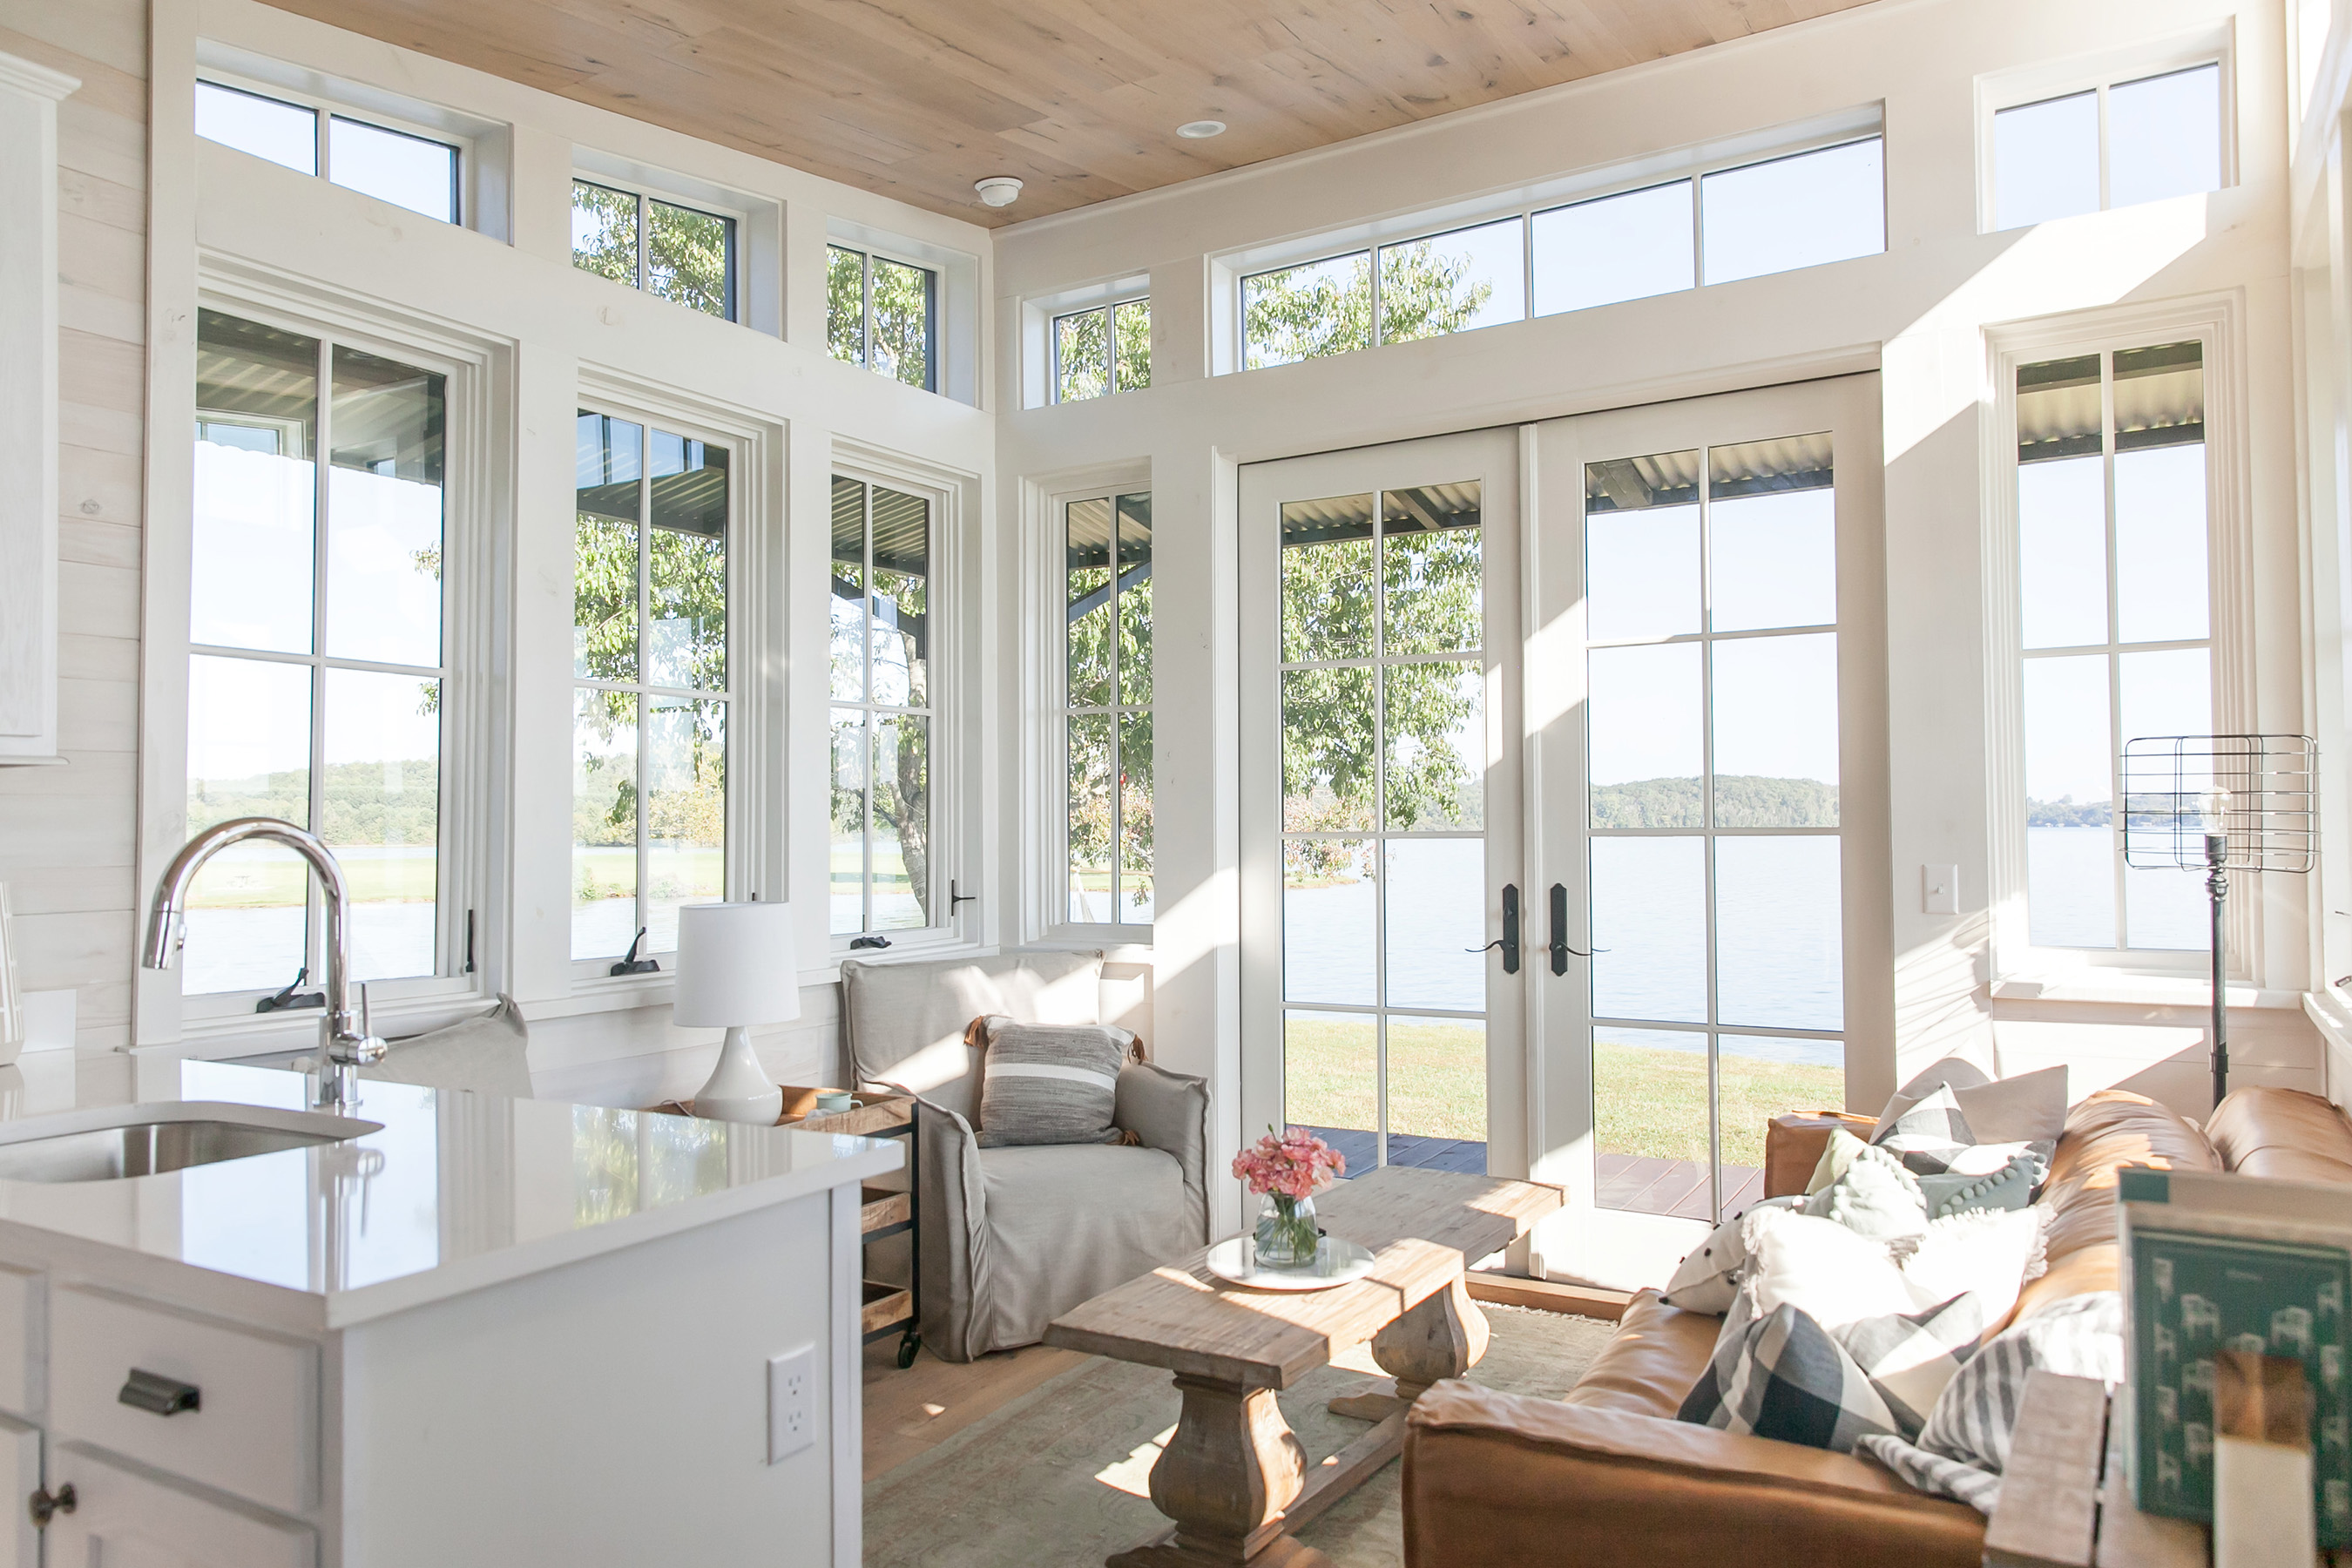 Clayton Tiny Homes Unveils The Saltbox Floor Plan